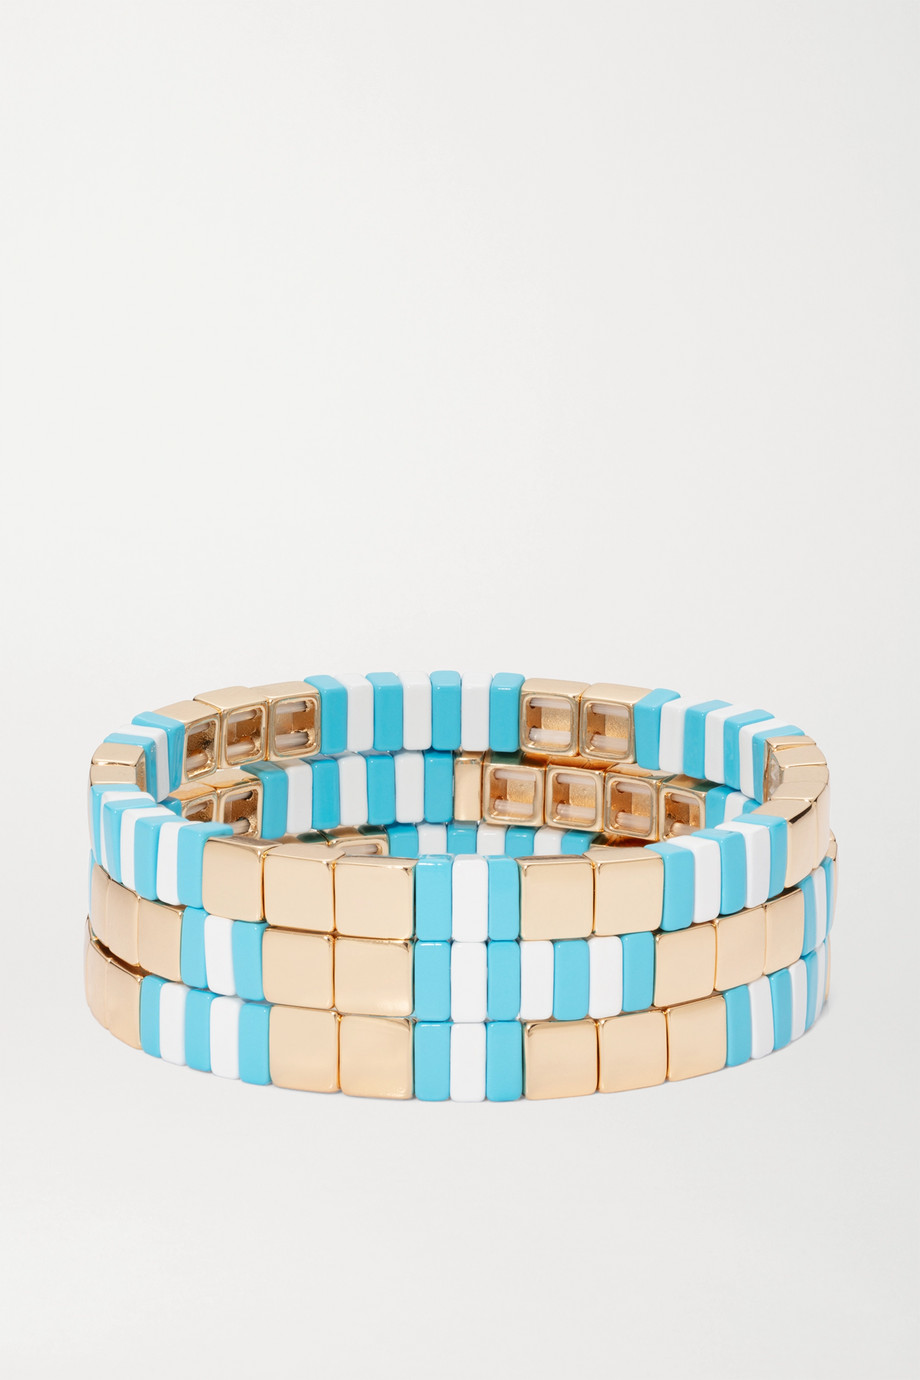 Roxanne Assoulin Poolside set of three enamel and gold-plated bracelets